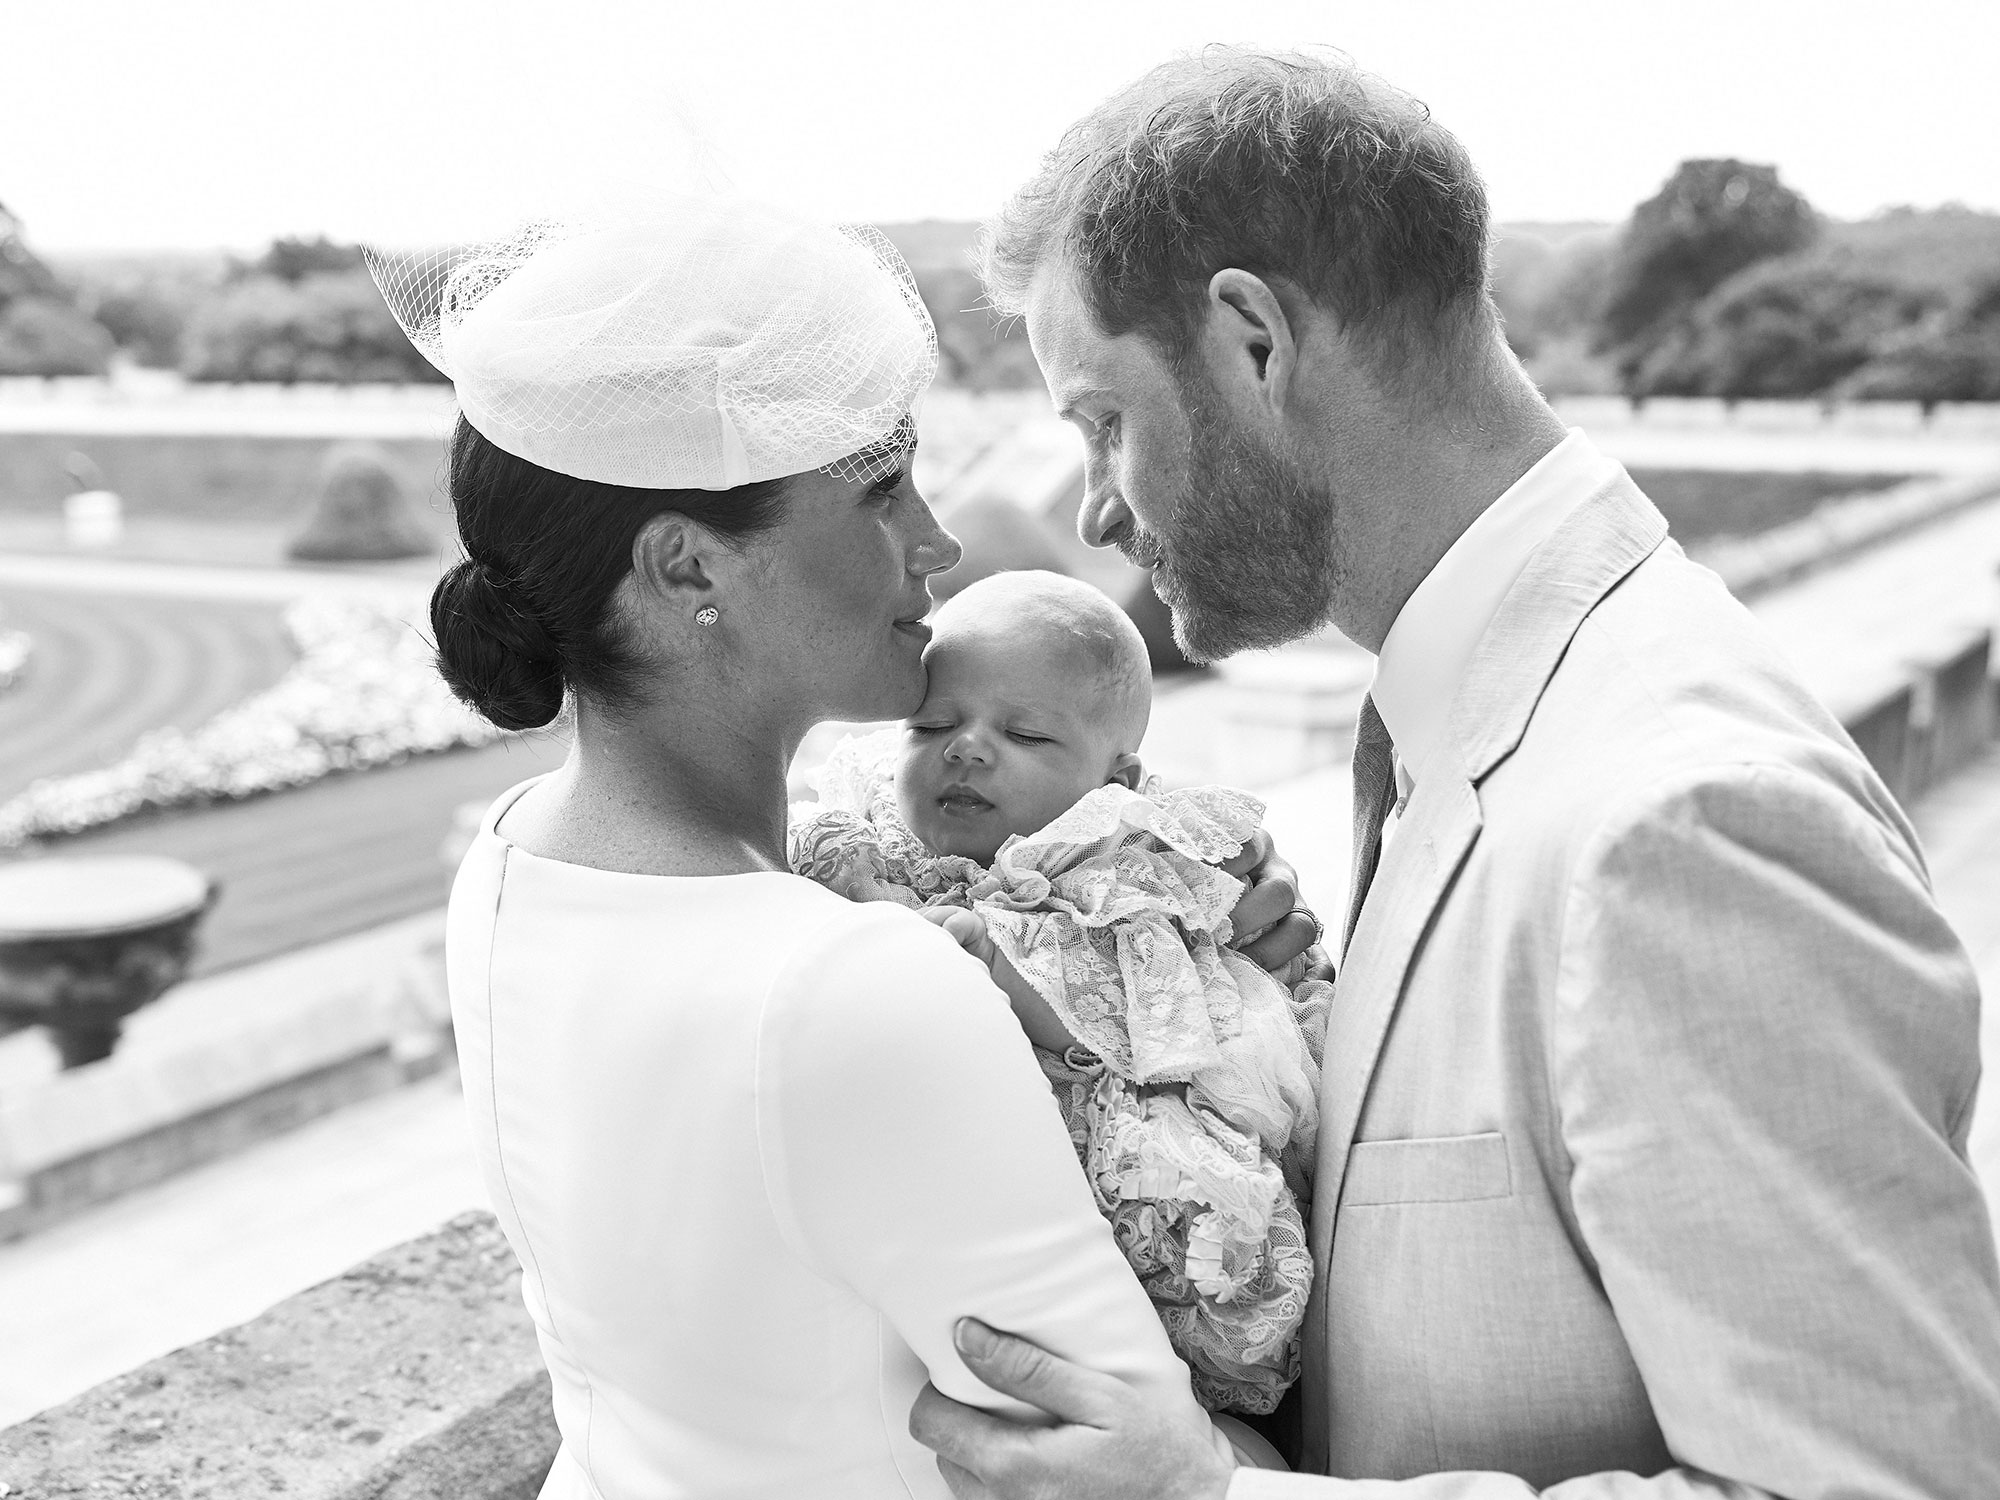 Archie's Big Day! Meghan Markle and Prince Harry's Son Has Christening at Queen's Private Chapel